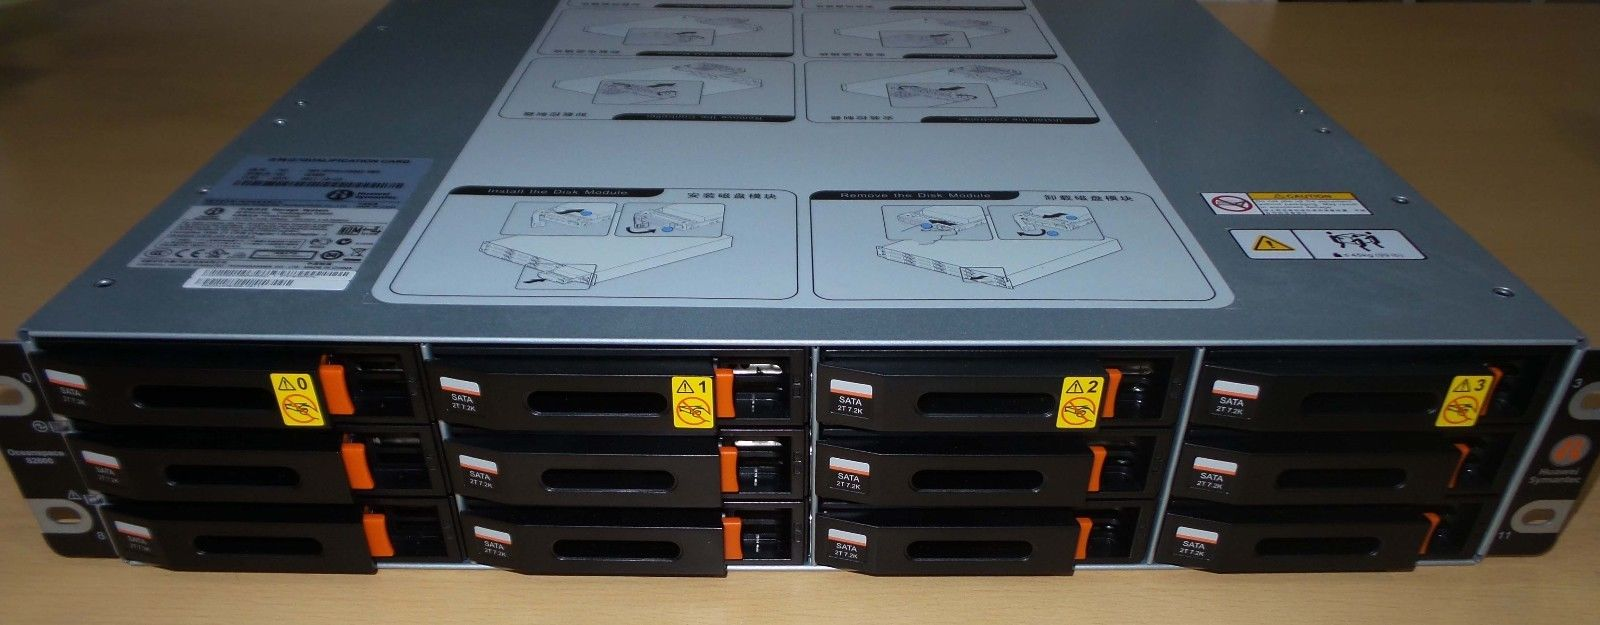 Huawei Storage Symantec Oceanspace S2600 12x 2TB 0231G520 + software + license_8